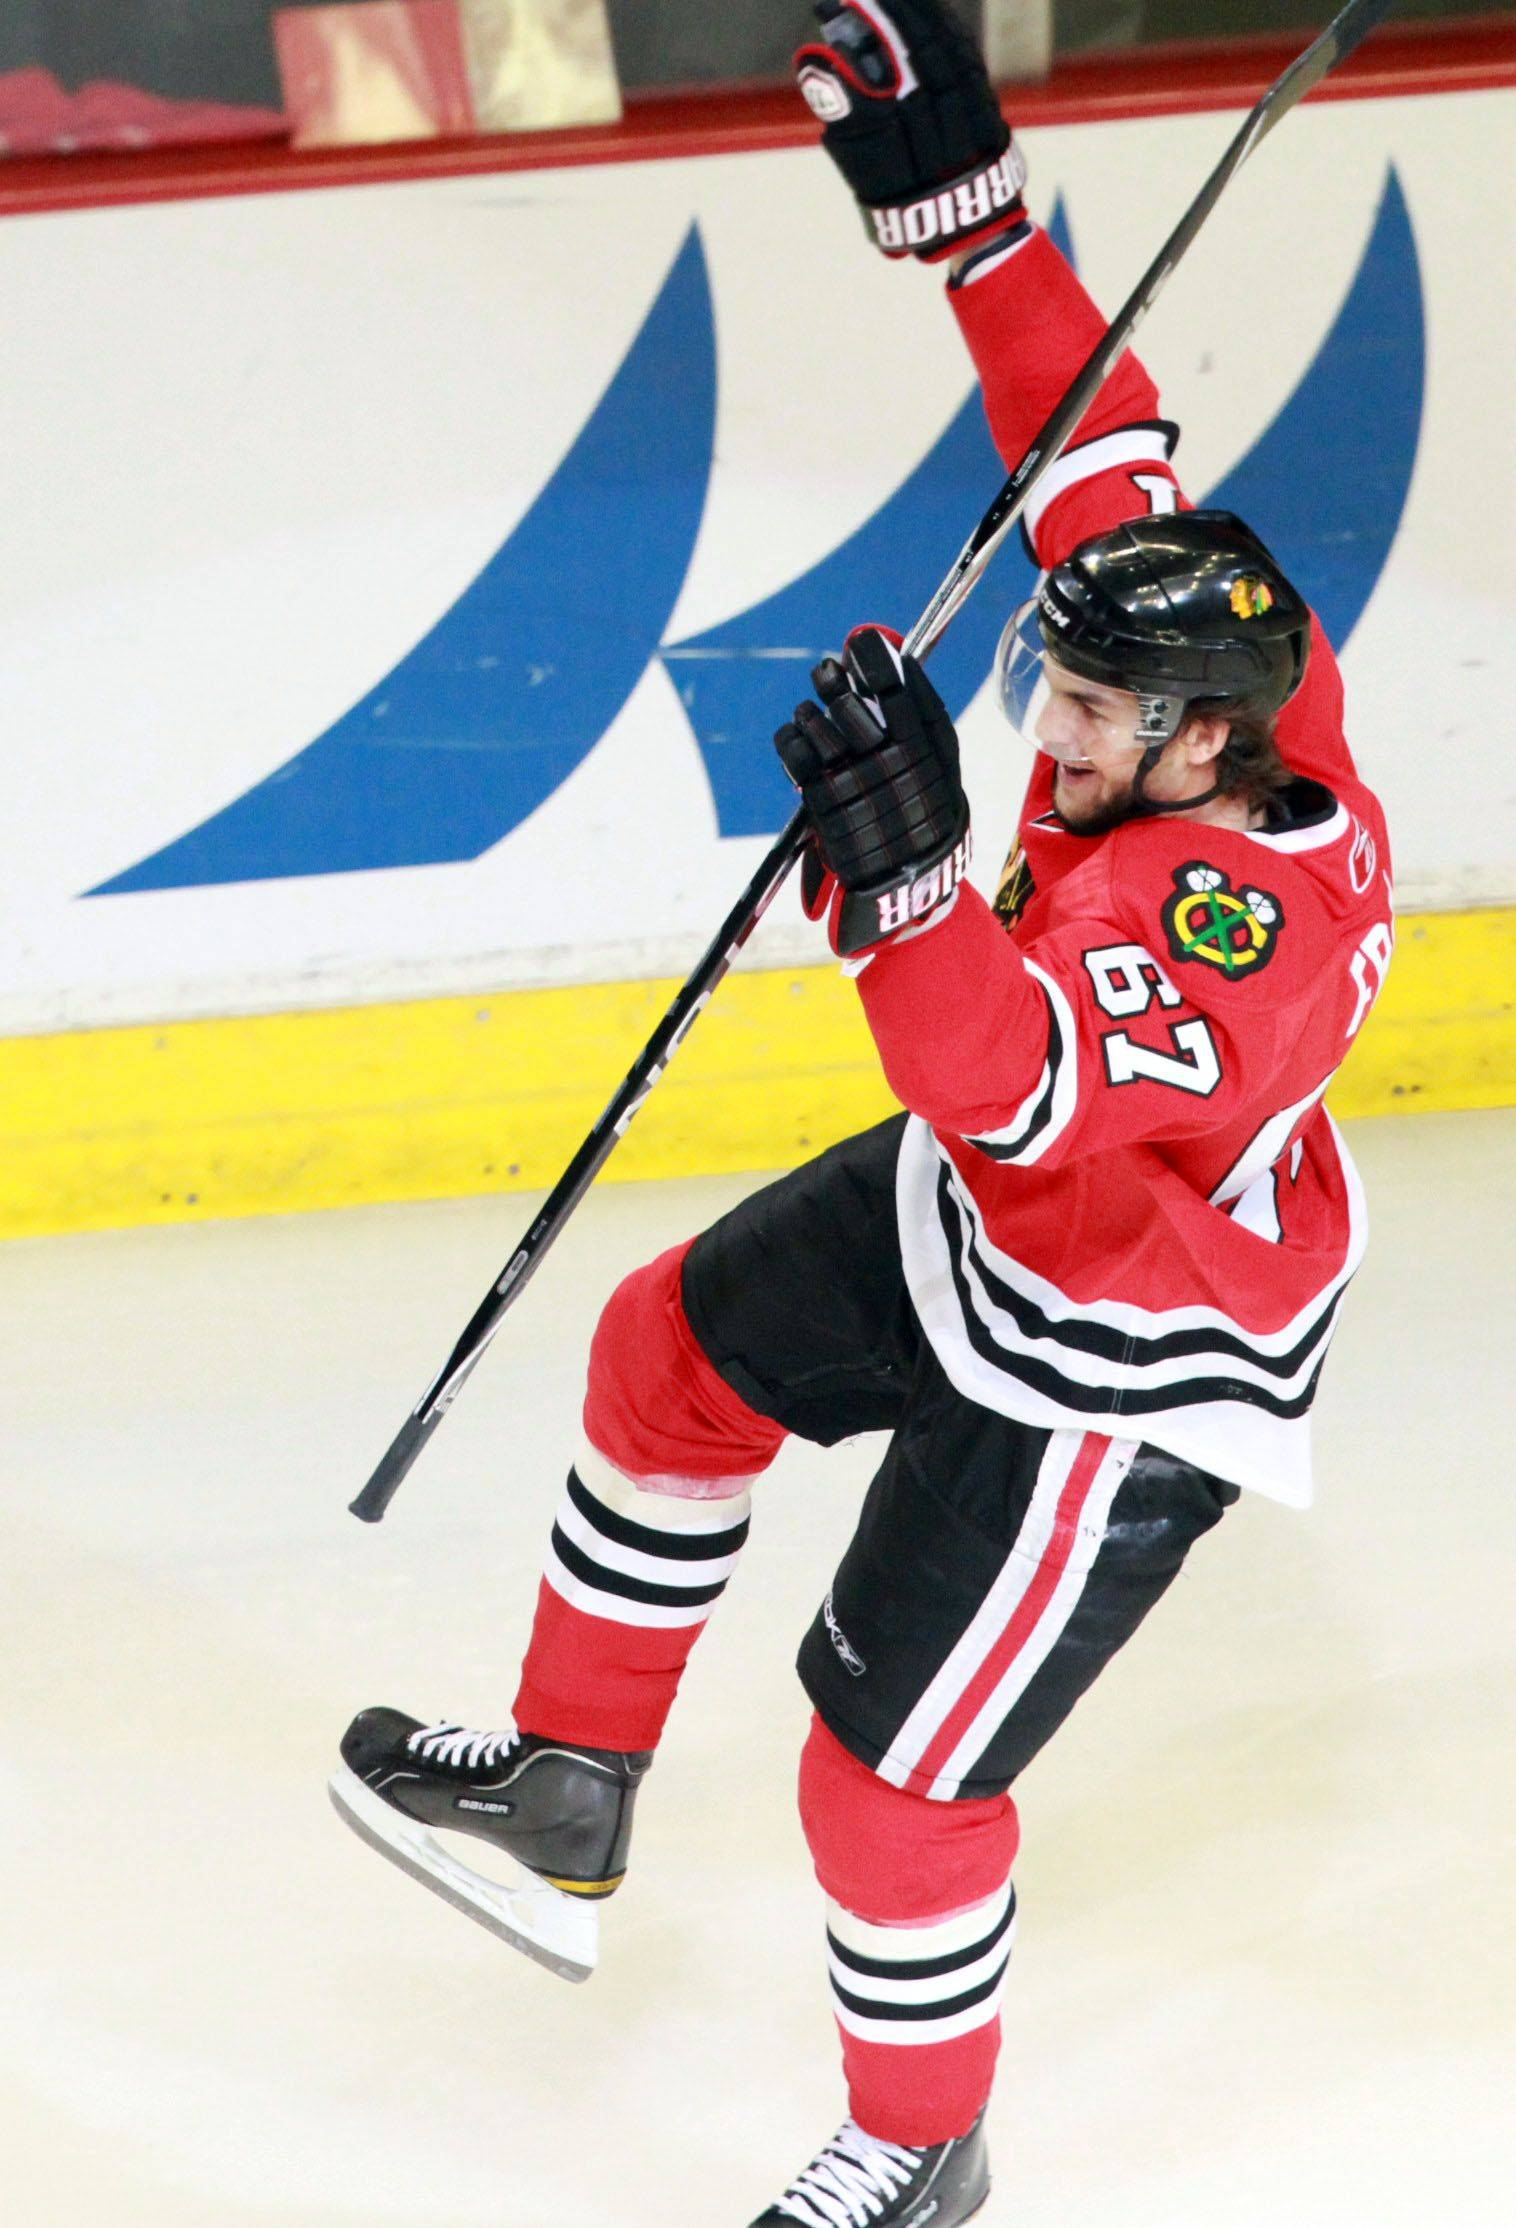 George LeClaire/gleclaire@dailyherald.com Chicago Blackhawks Michael Frolik celebrates his penalty goal against Vancouver Canucks in game 6 of the Stanley Cup quarterfinals at the United Center in Chicago on Sunday.